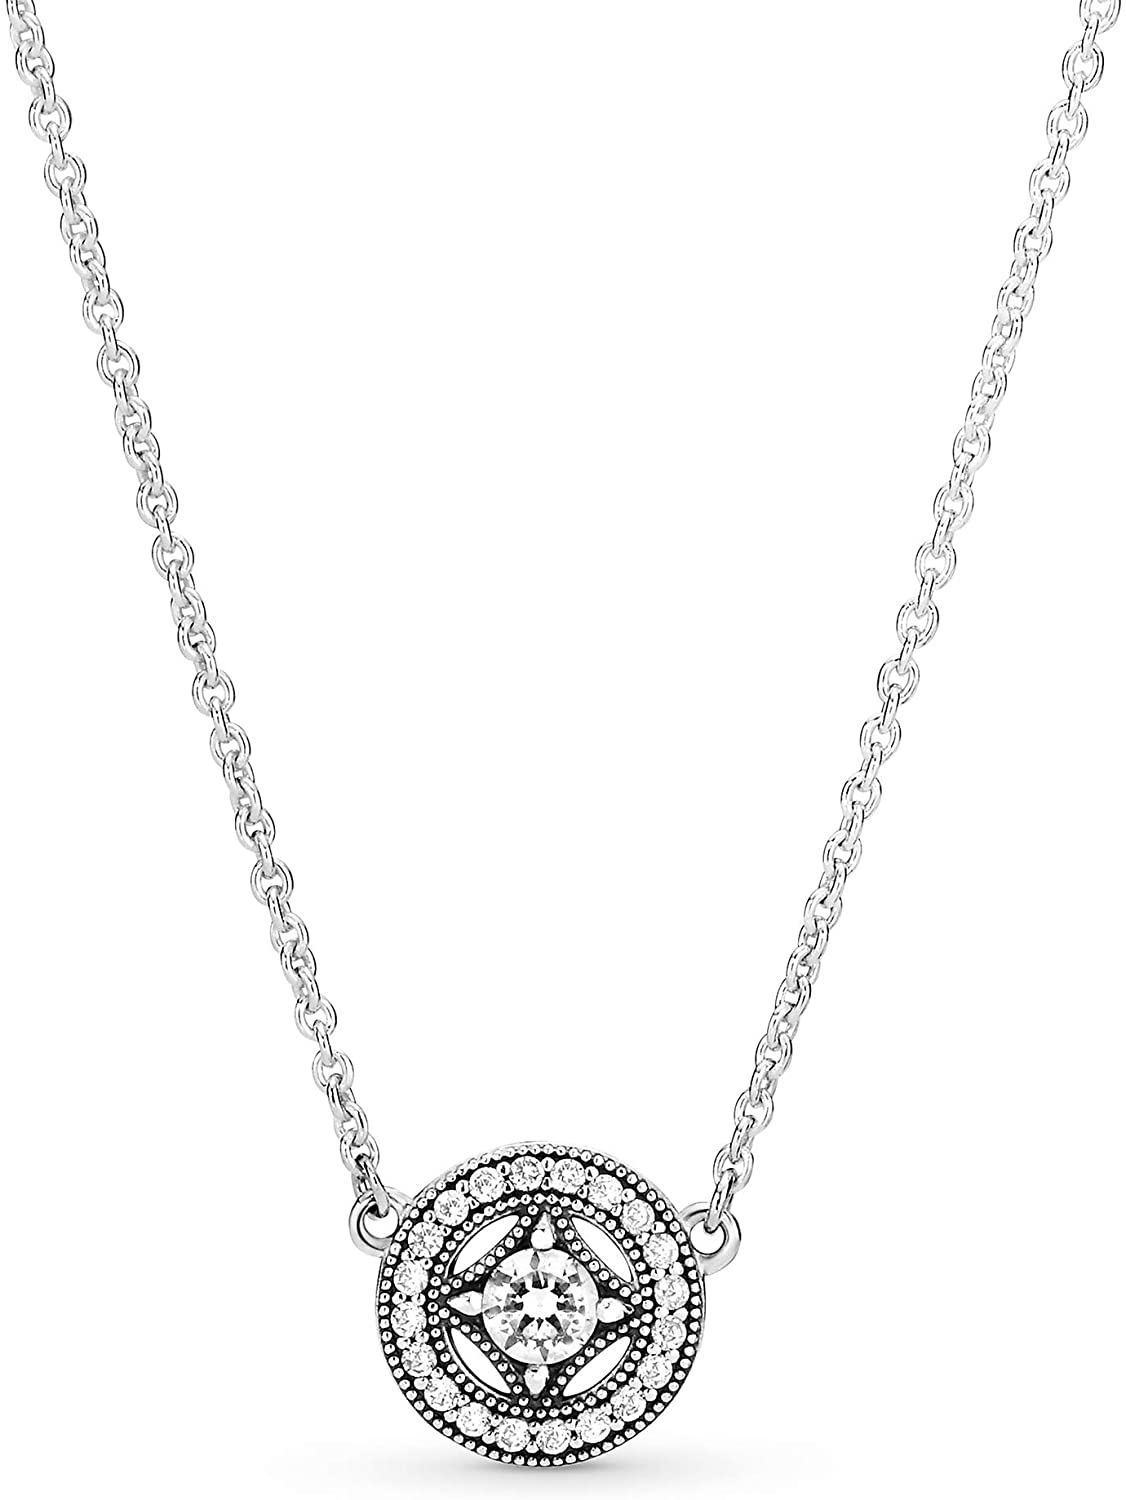 Pandora Jewelry Vintage Circle Collier Silver Chain Cubic Zirconia Necklace  in Sterling Silver, 17.7